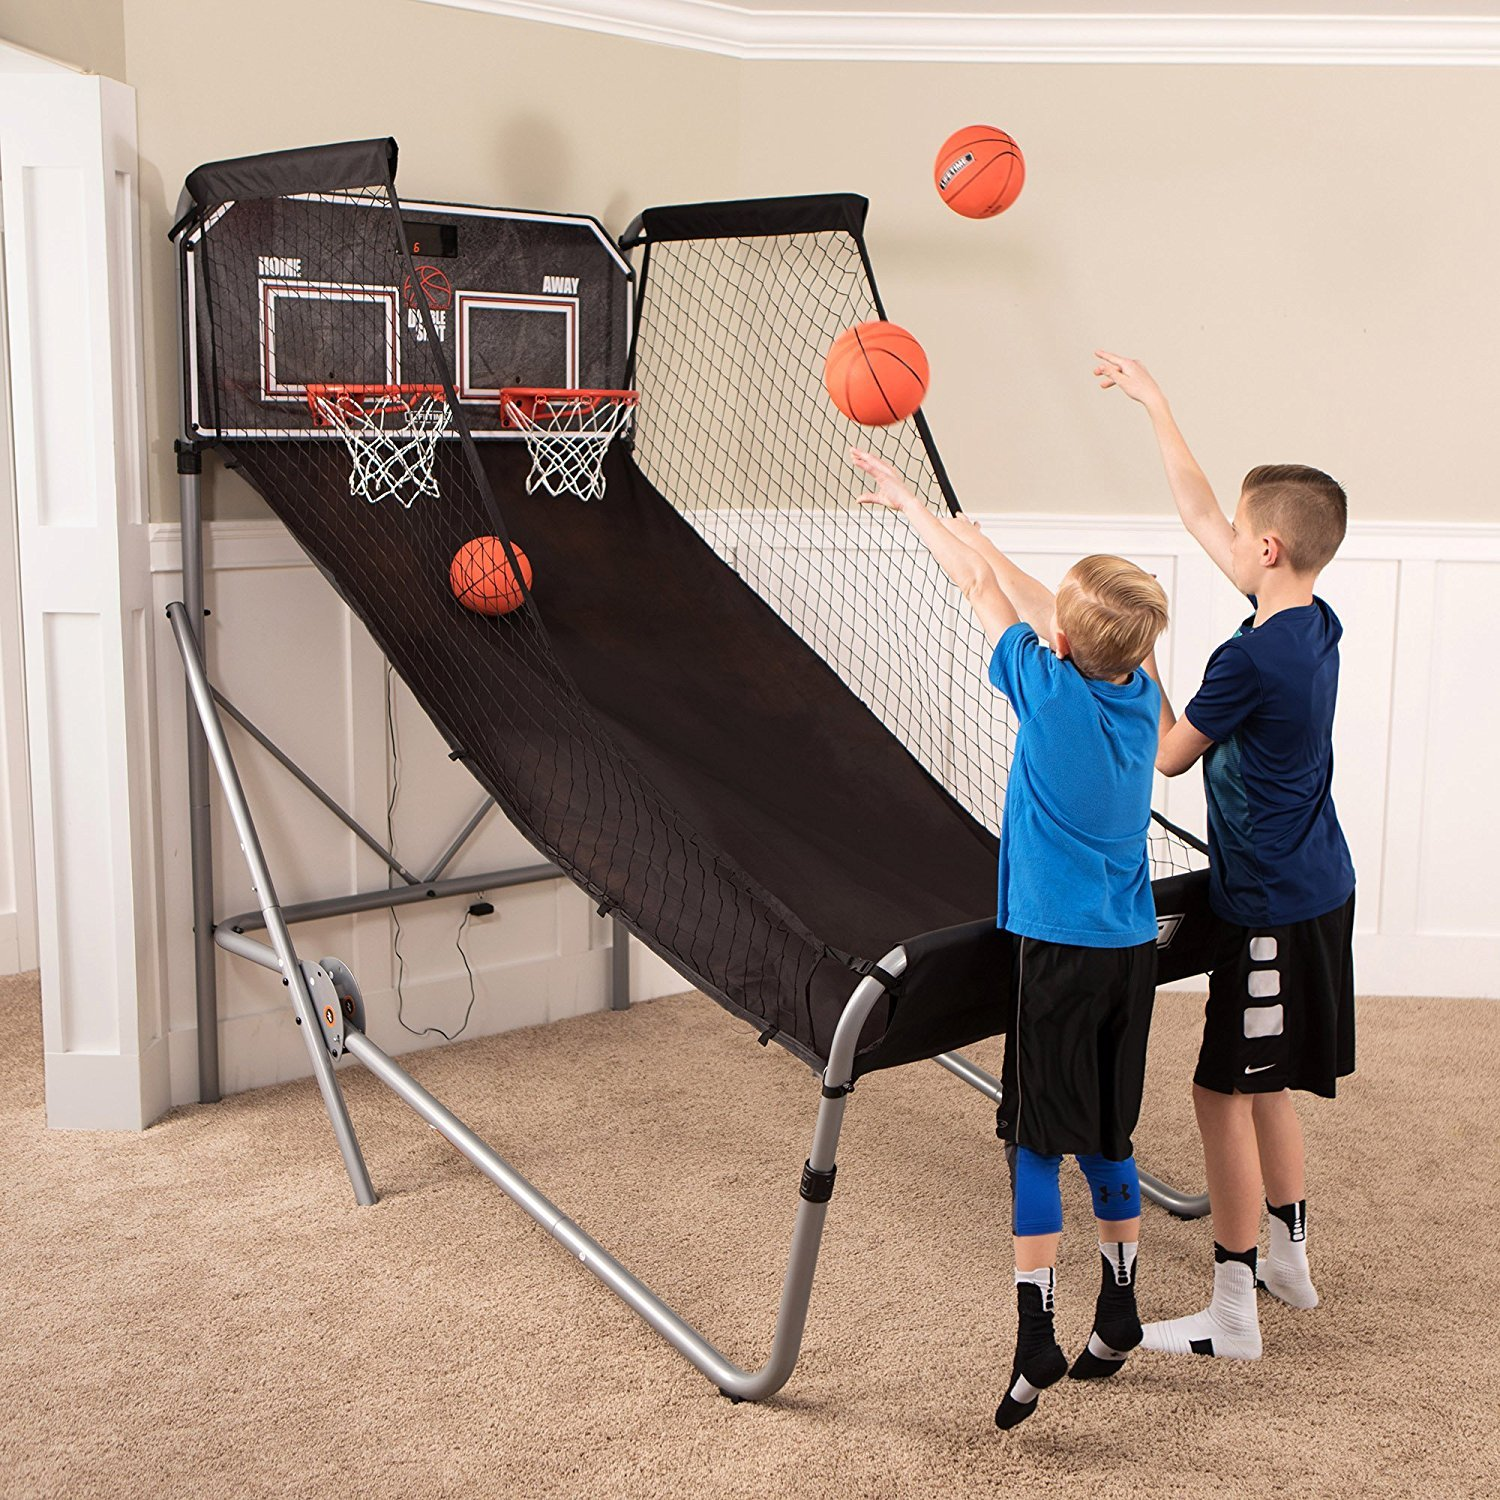 Sportcraft SIR00733 Quick Set-Up Basketball Arcade 8 Game Modes, 2-Players, Setup Less Than 10 Mins, No Tools Required, Heavy Duty 1'' Steel Tube by Sportcraft (Image #10)